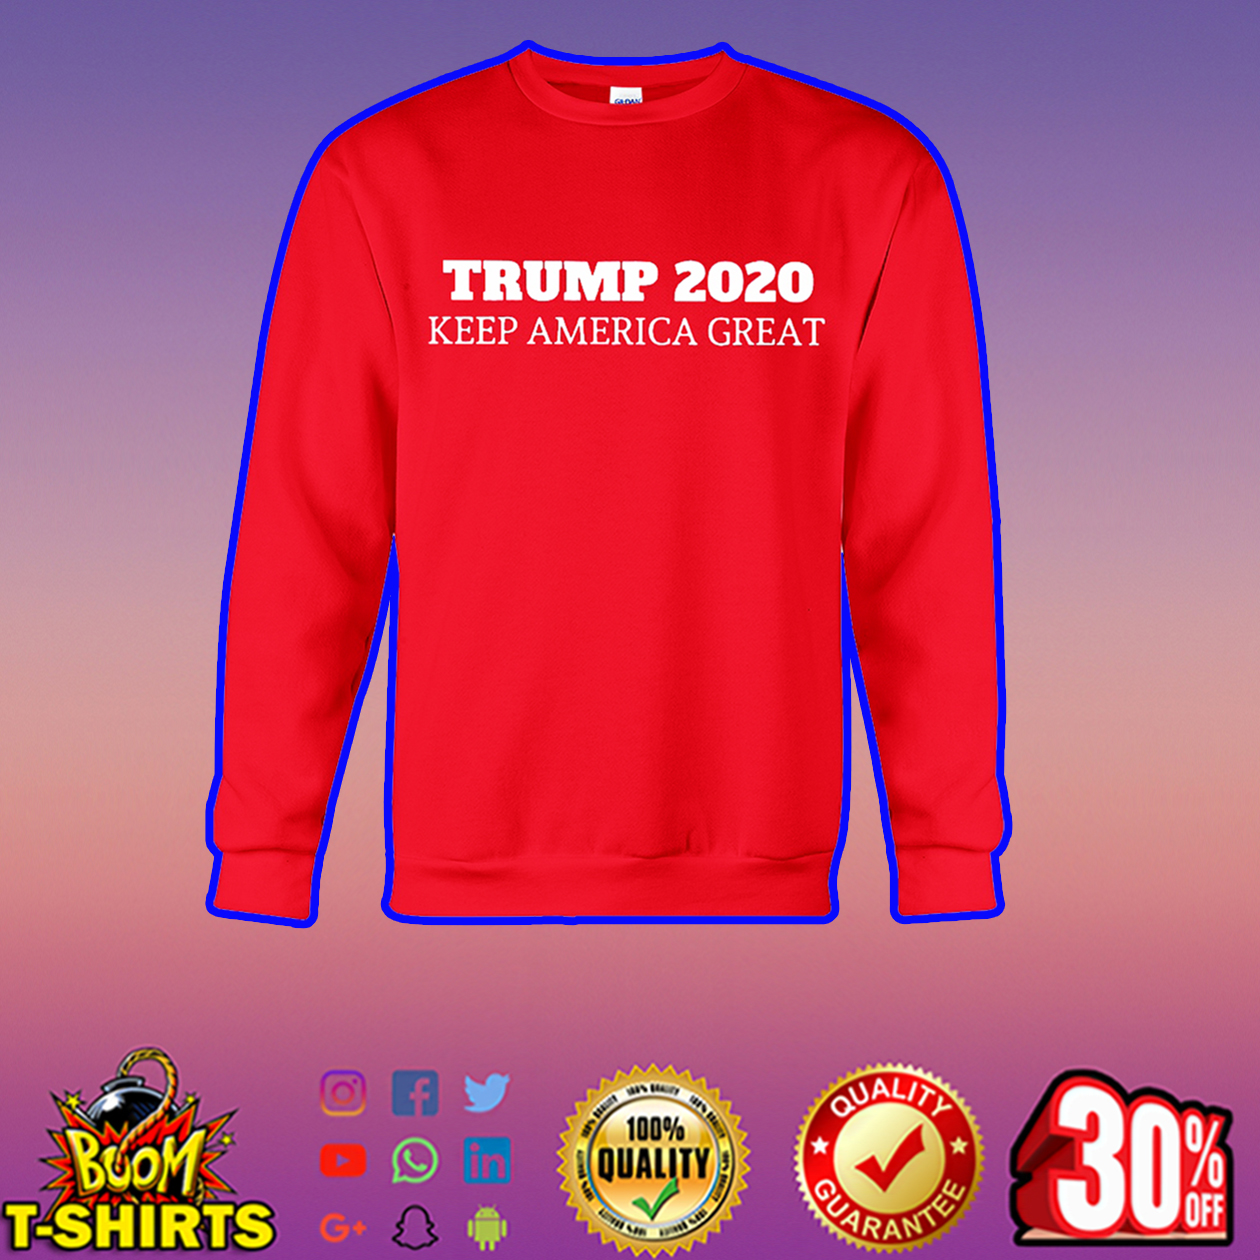 Trump 2020 keep America great sweatshirt